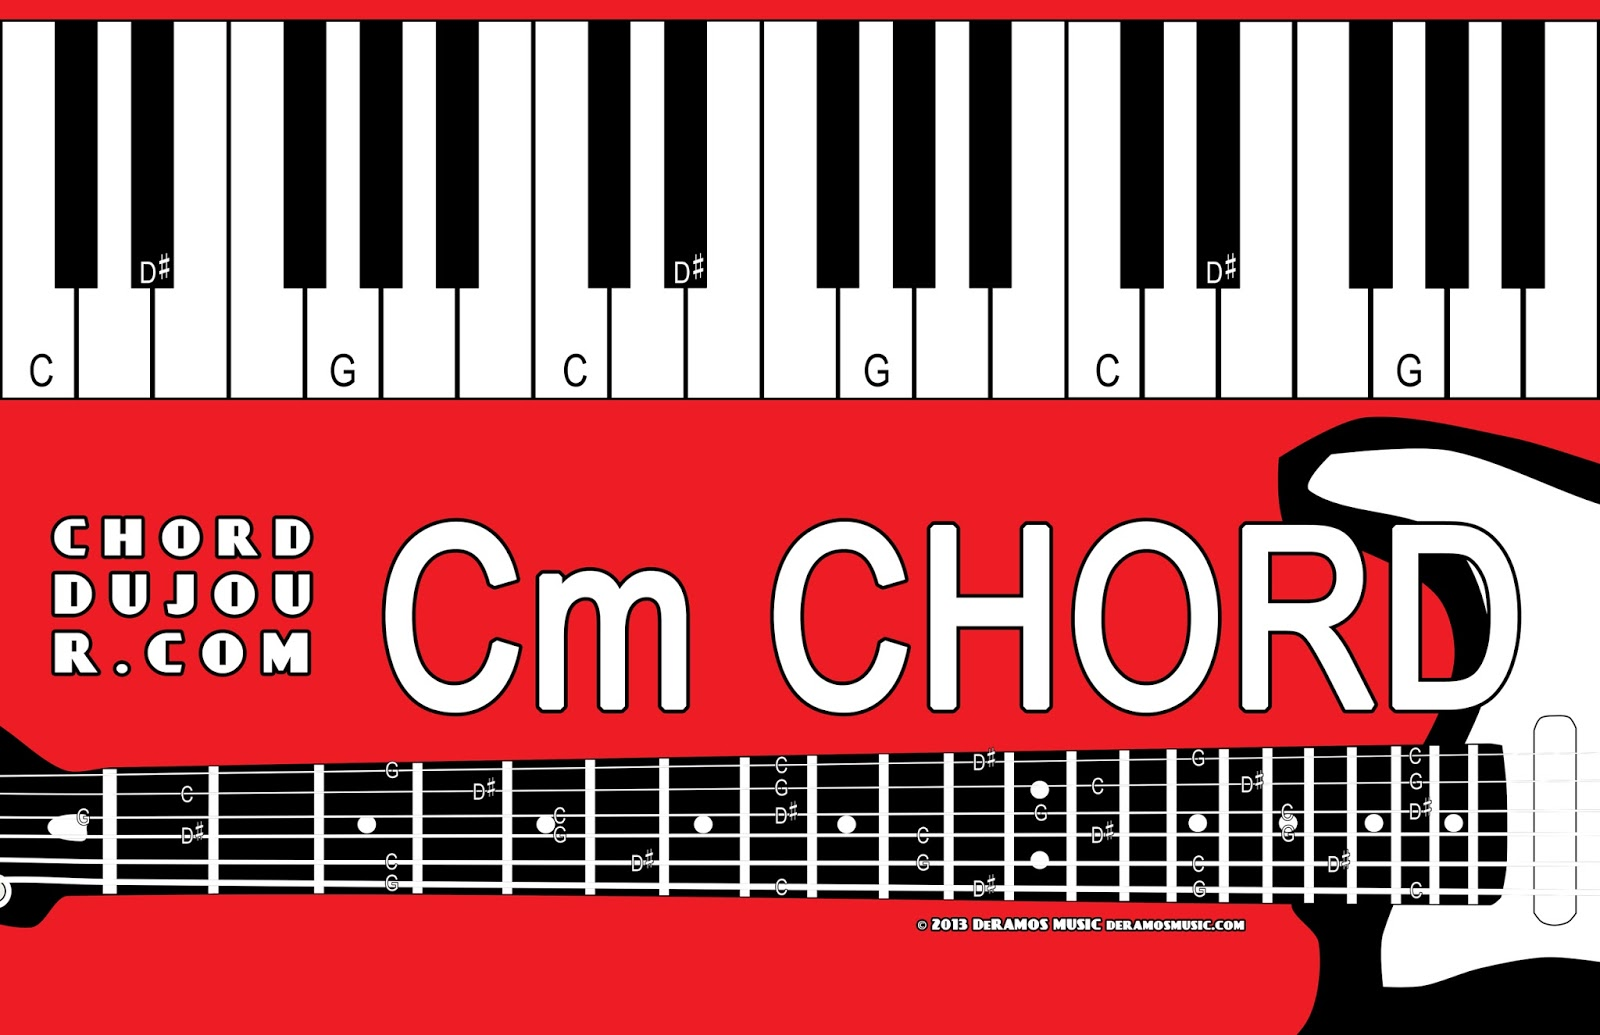 Chord du jour dictionary cm chord dictionary cm chord hexwebz Image collections